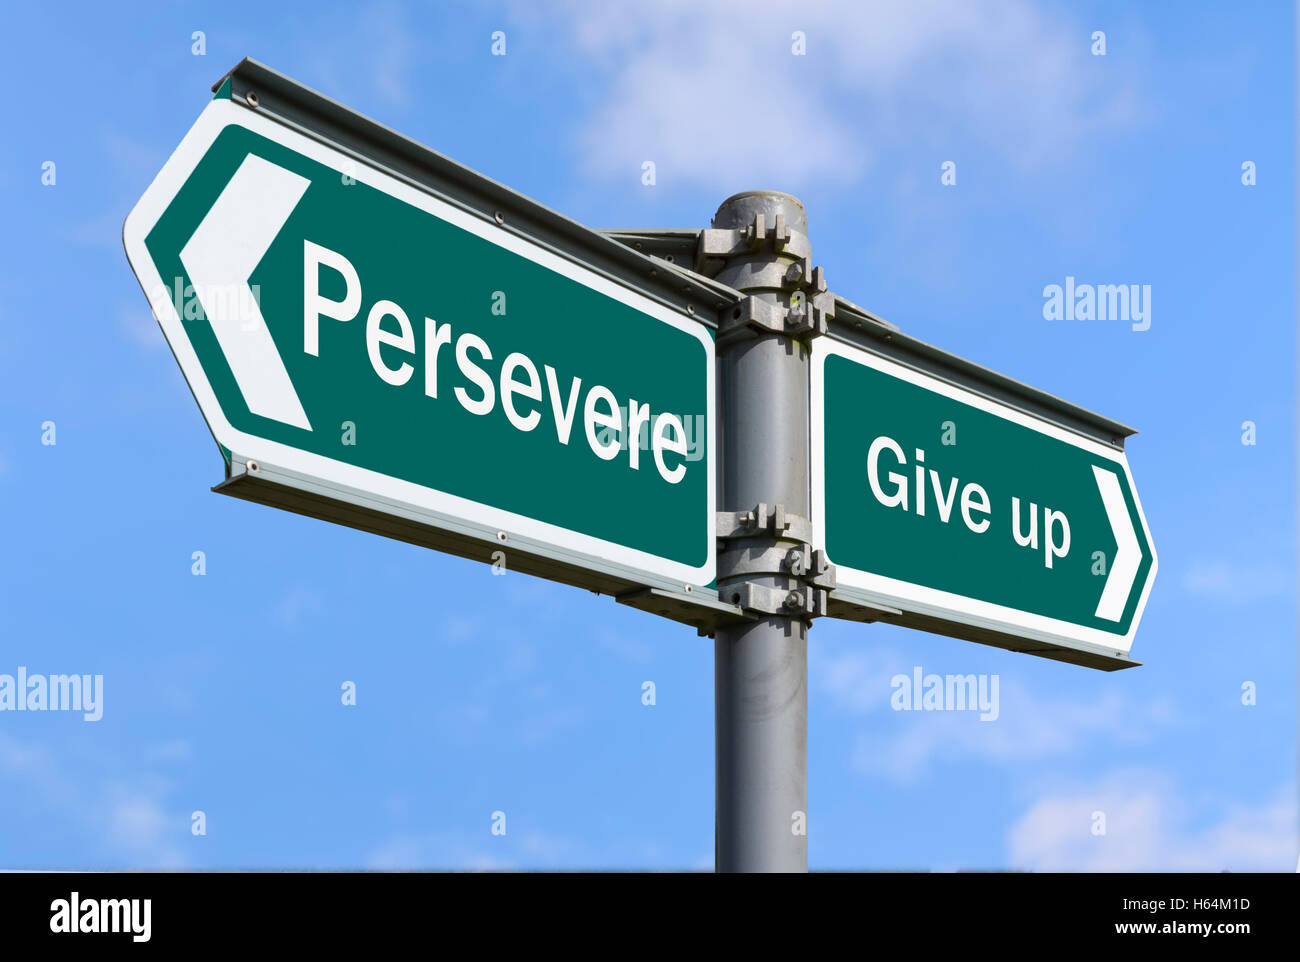 Persevere or Give Up direction sign. - Stock Image